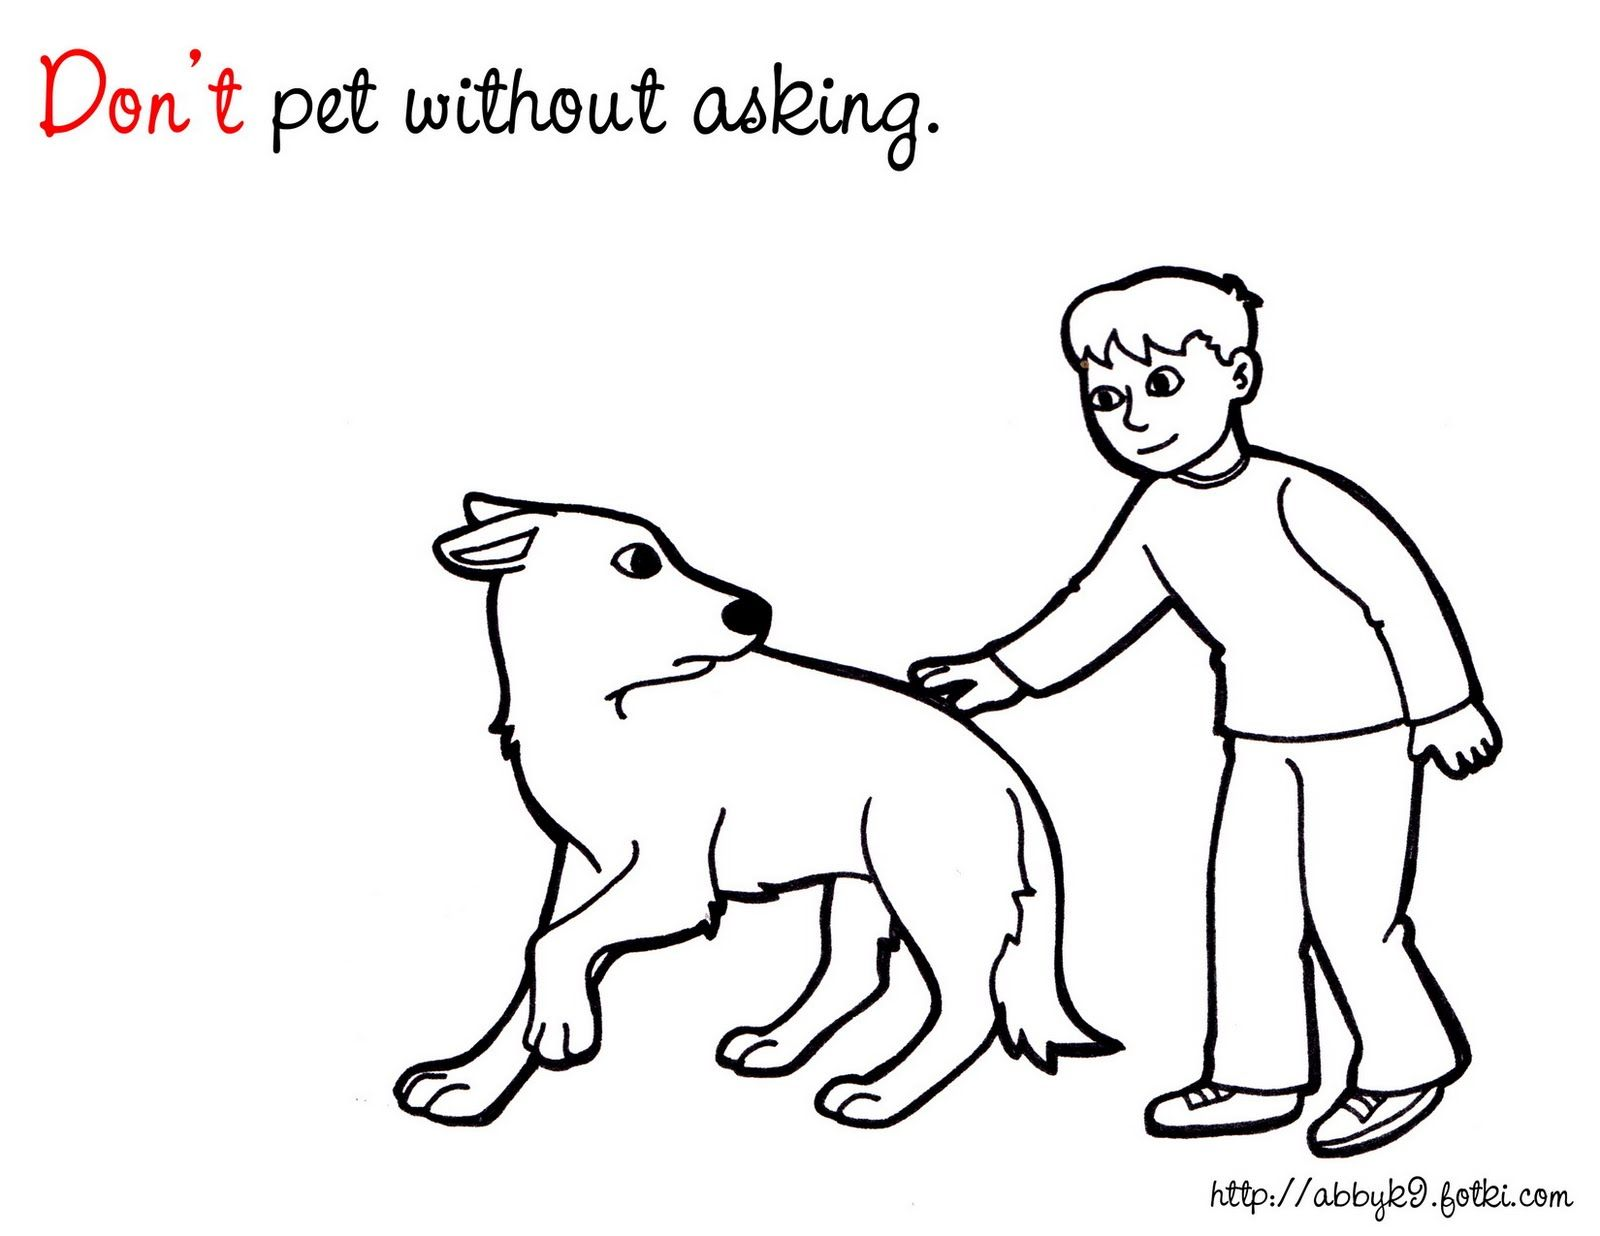 Dog Safety Coloring Pages Amp Literature For Kids